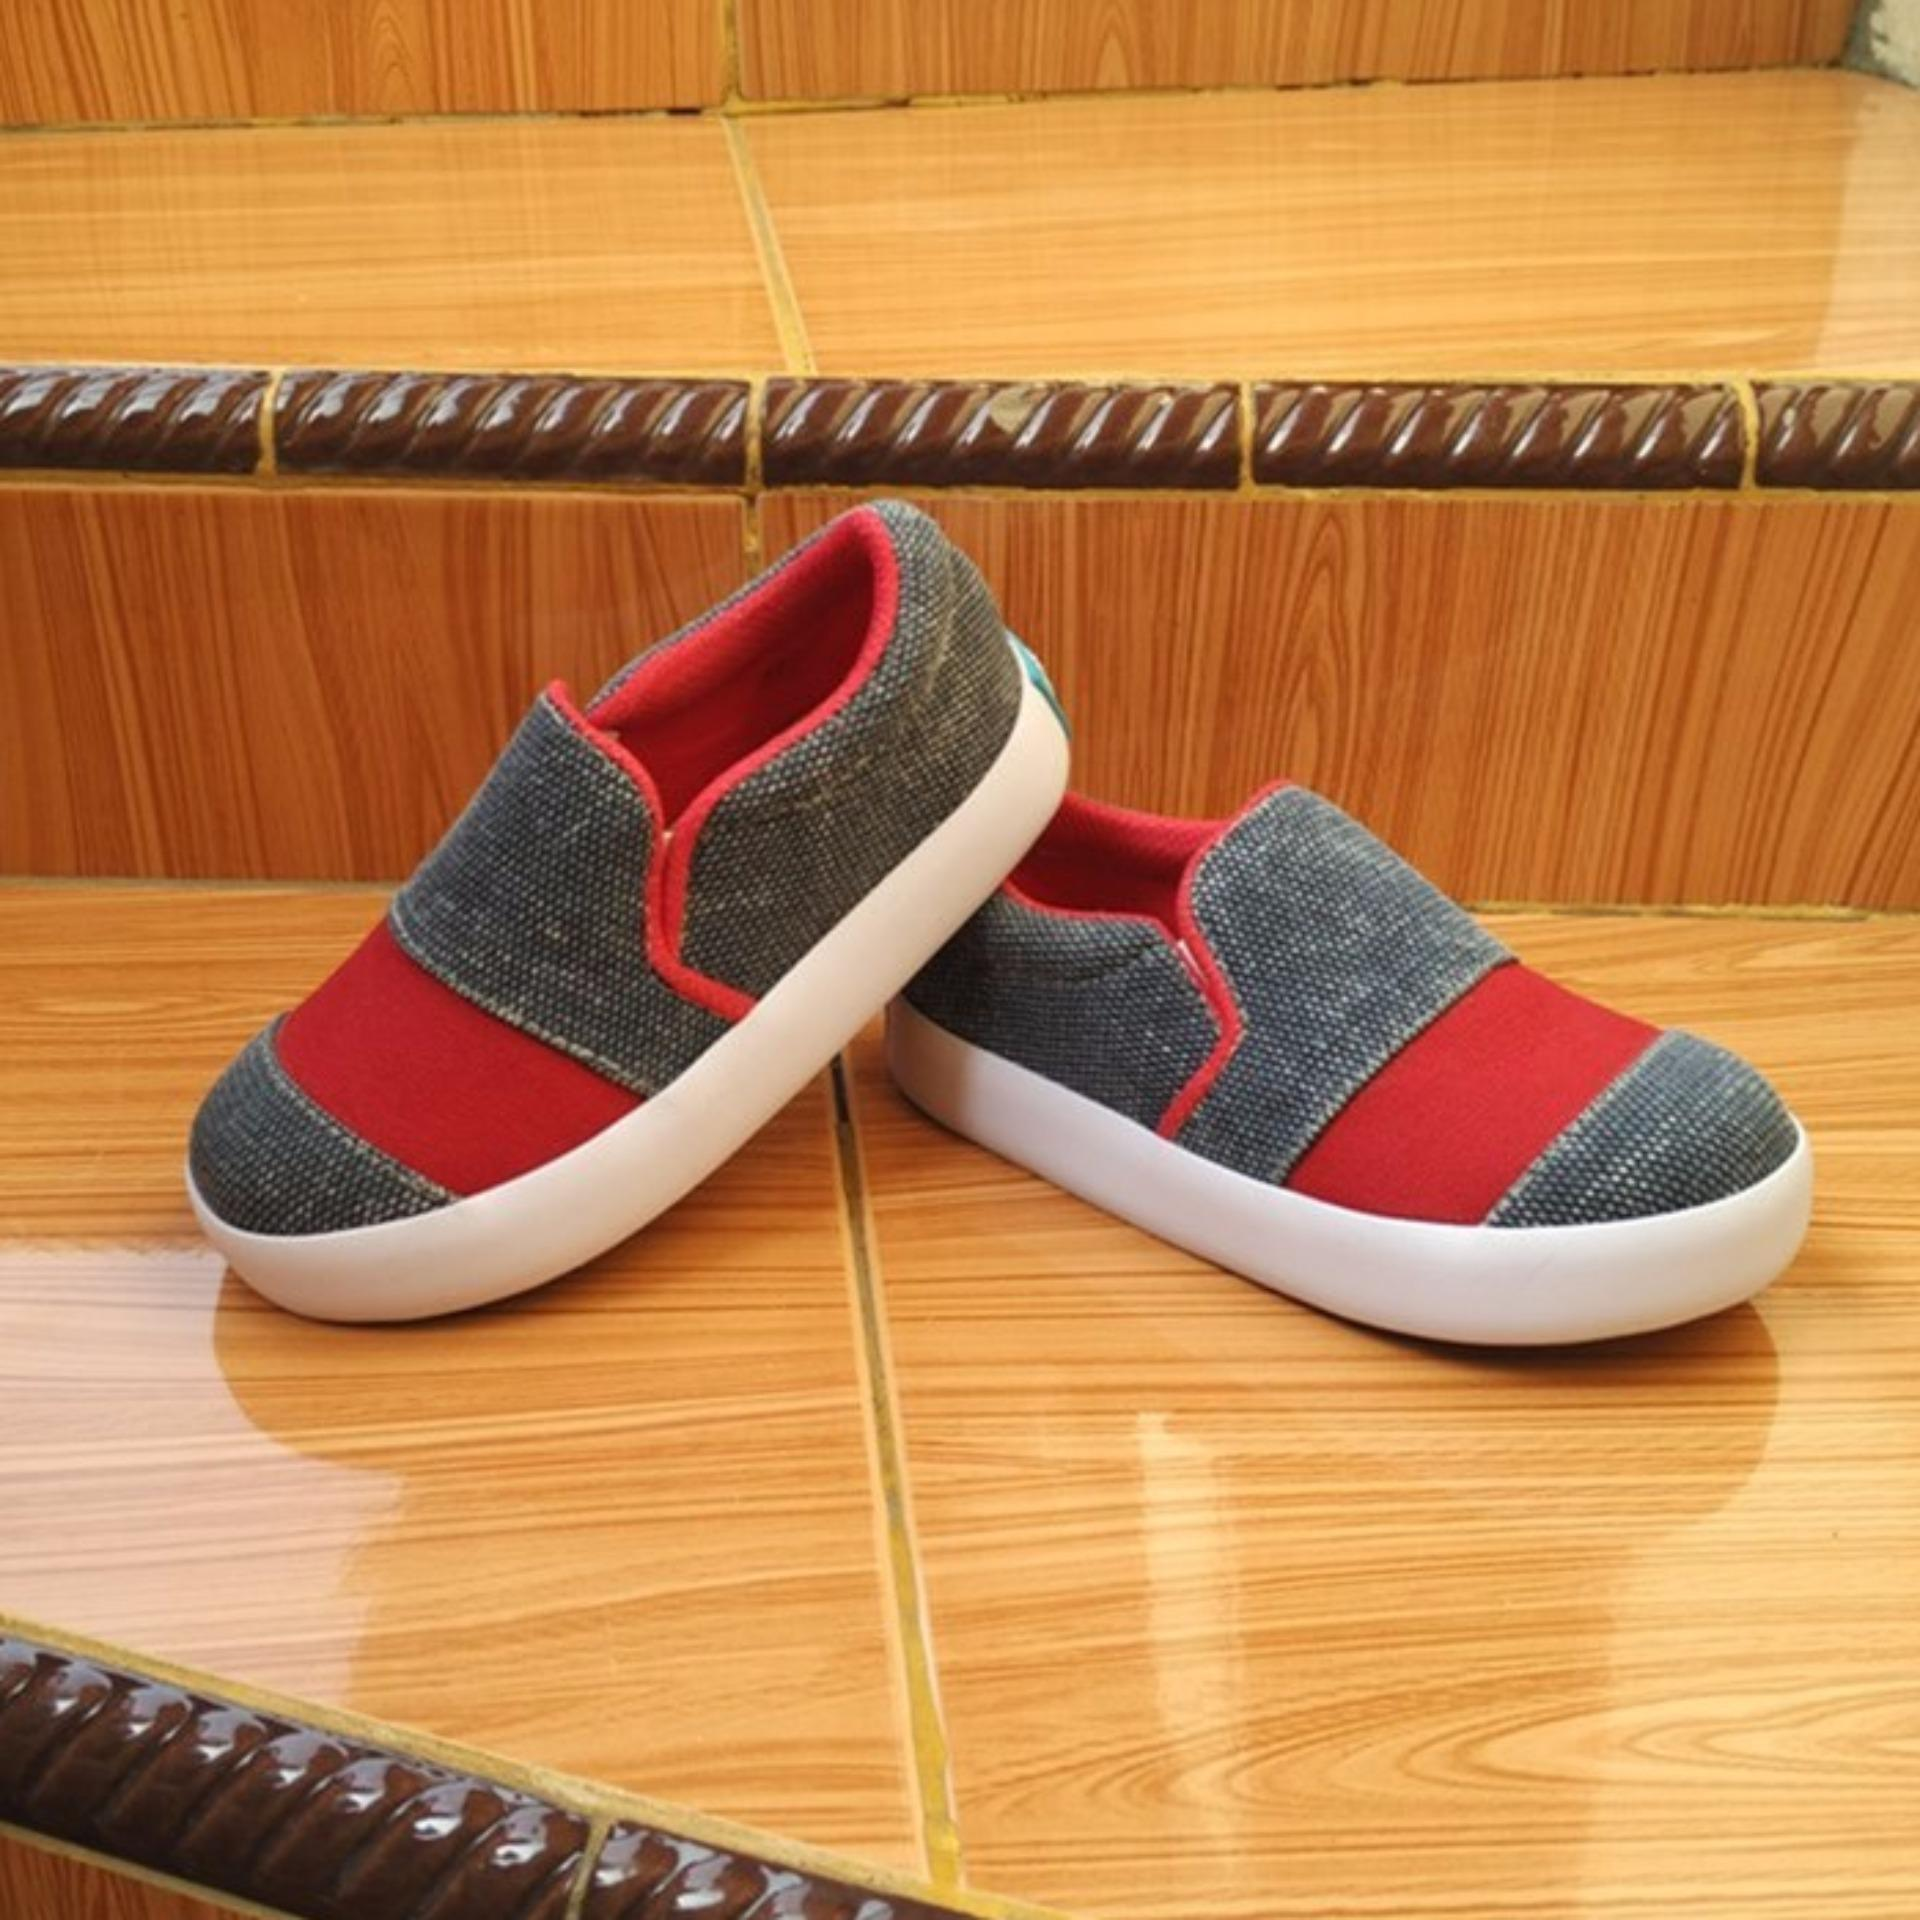 Review Sepatu Anak Slip On Murah Kanvas Casual Trendy By Shuku Terbaru